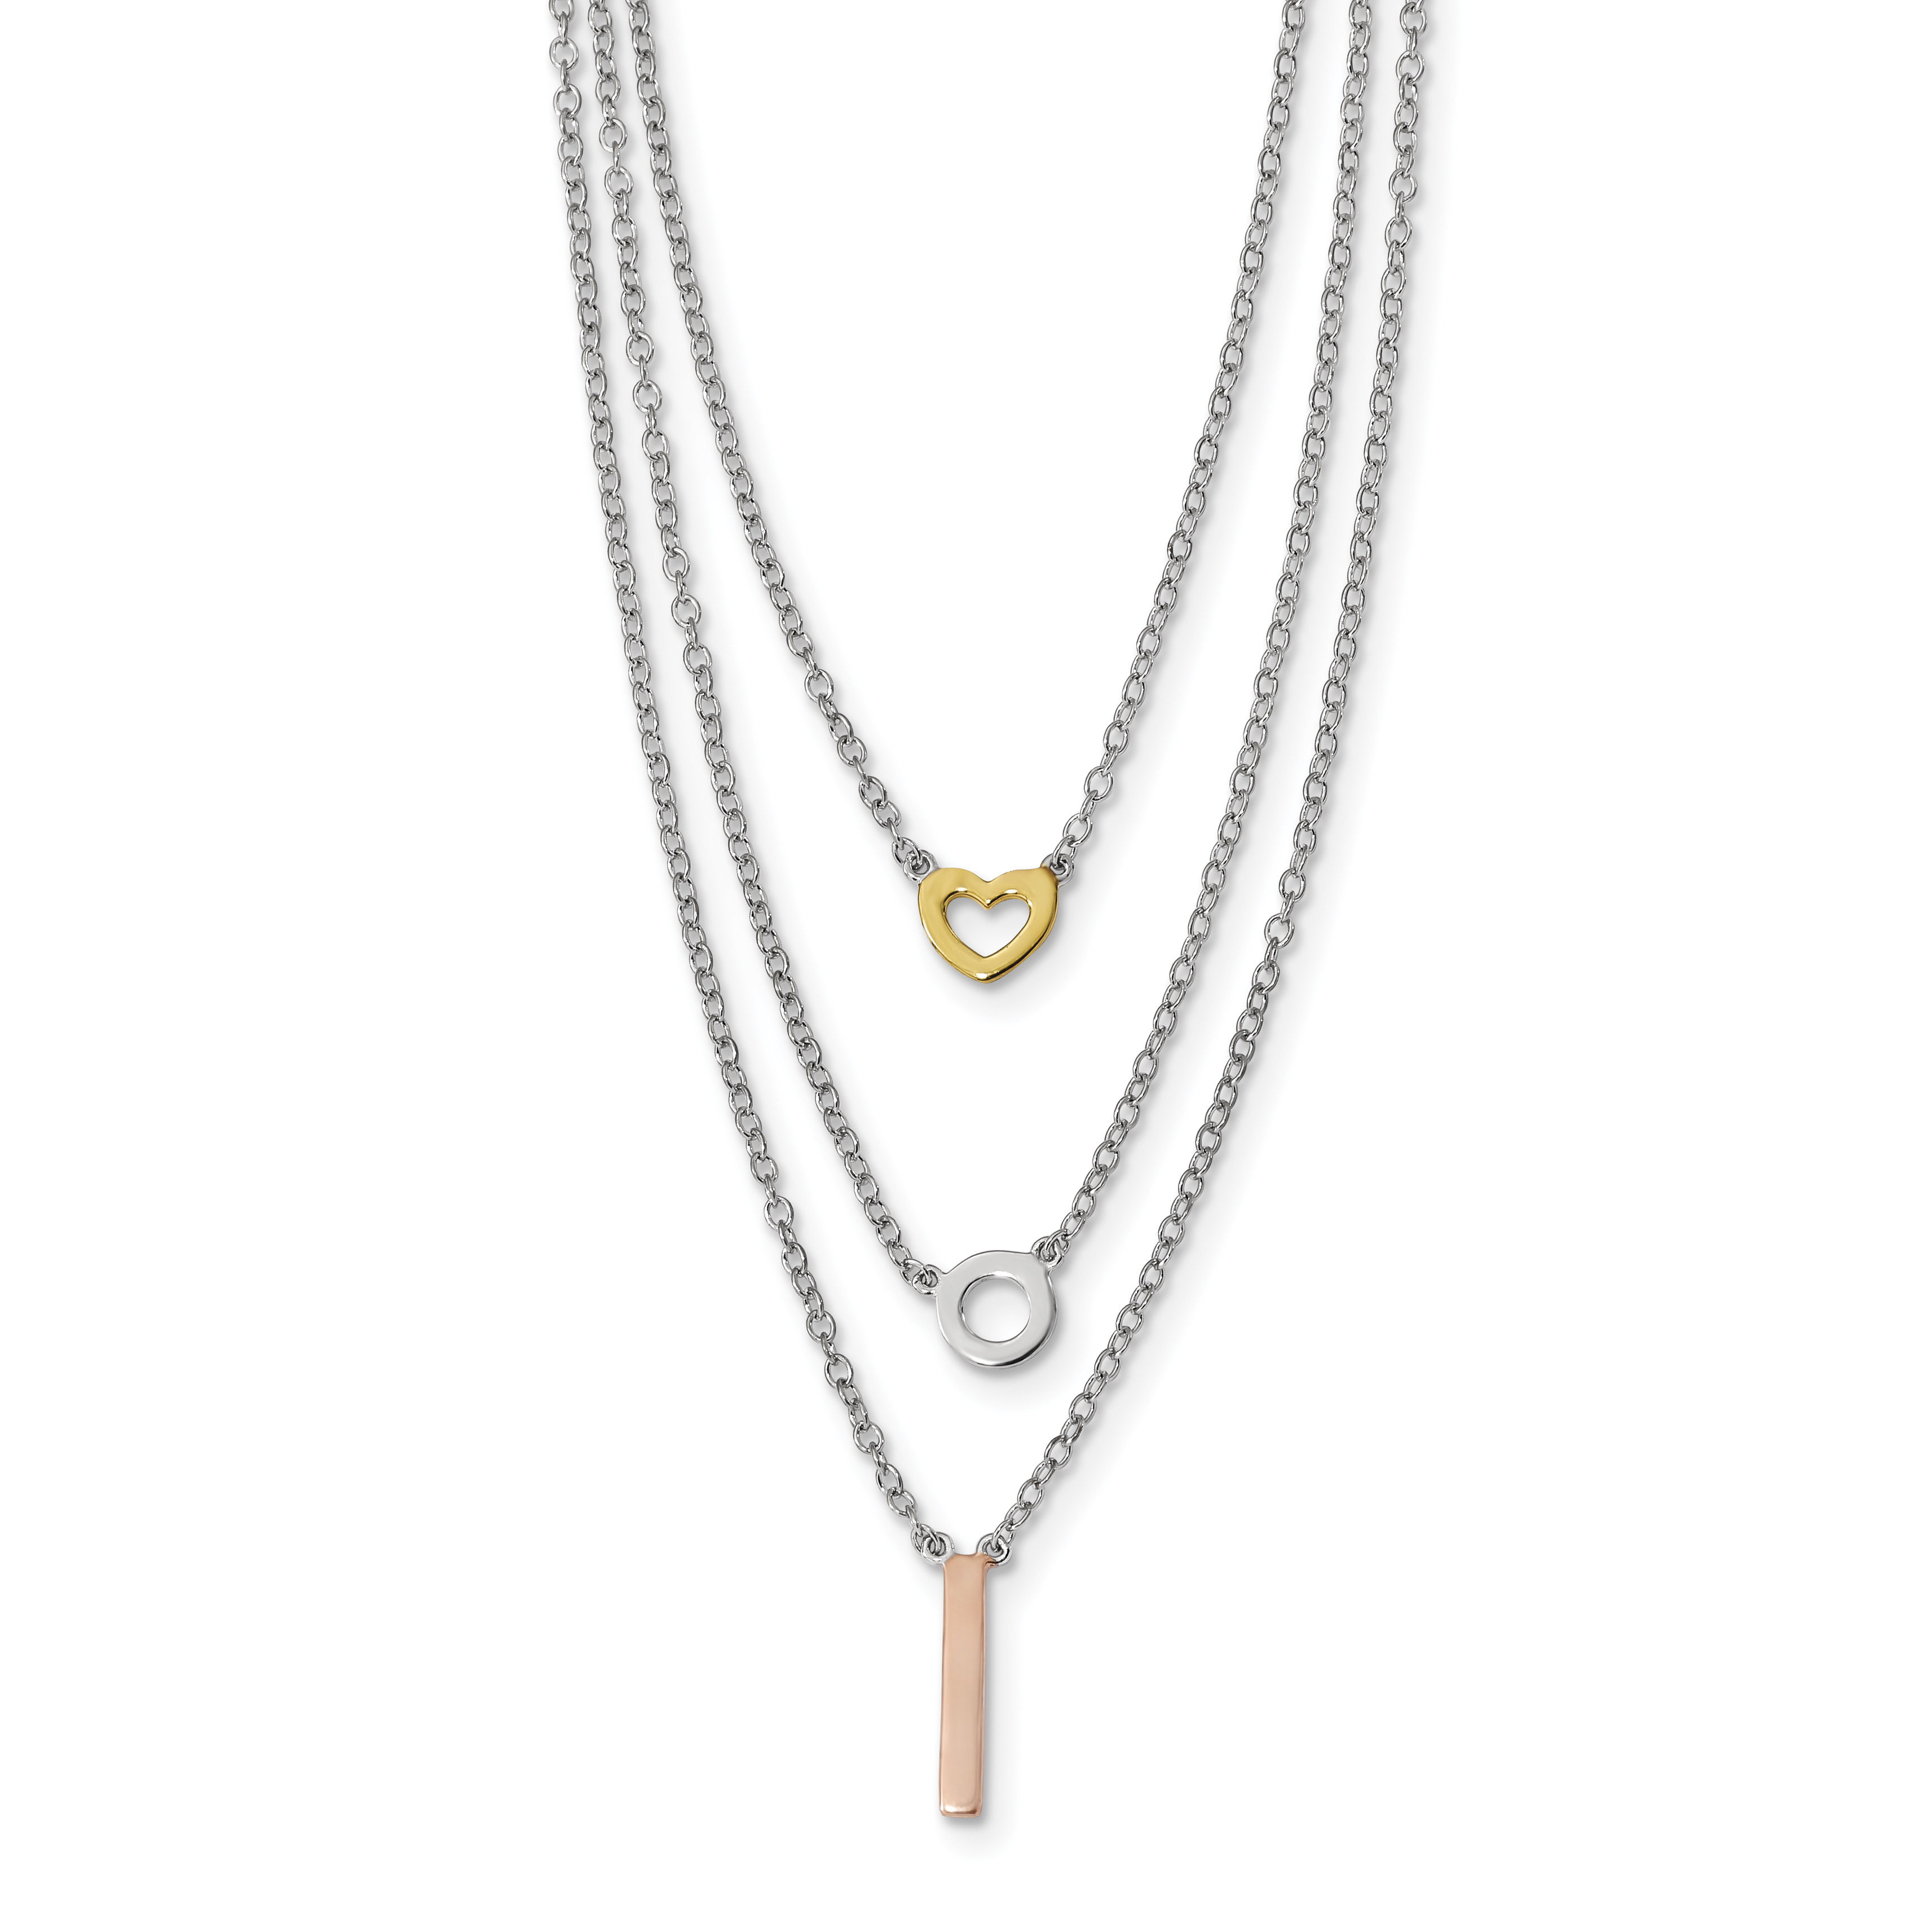 925 Sterling Silver Rhodium-Plated, Gold-Tone Heart, Rose-Tone Bar Necklace 16 Inch - image 1 de 1